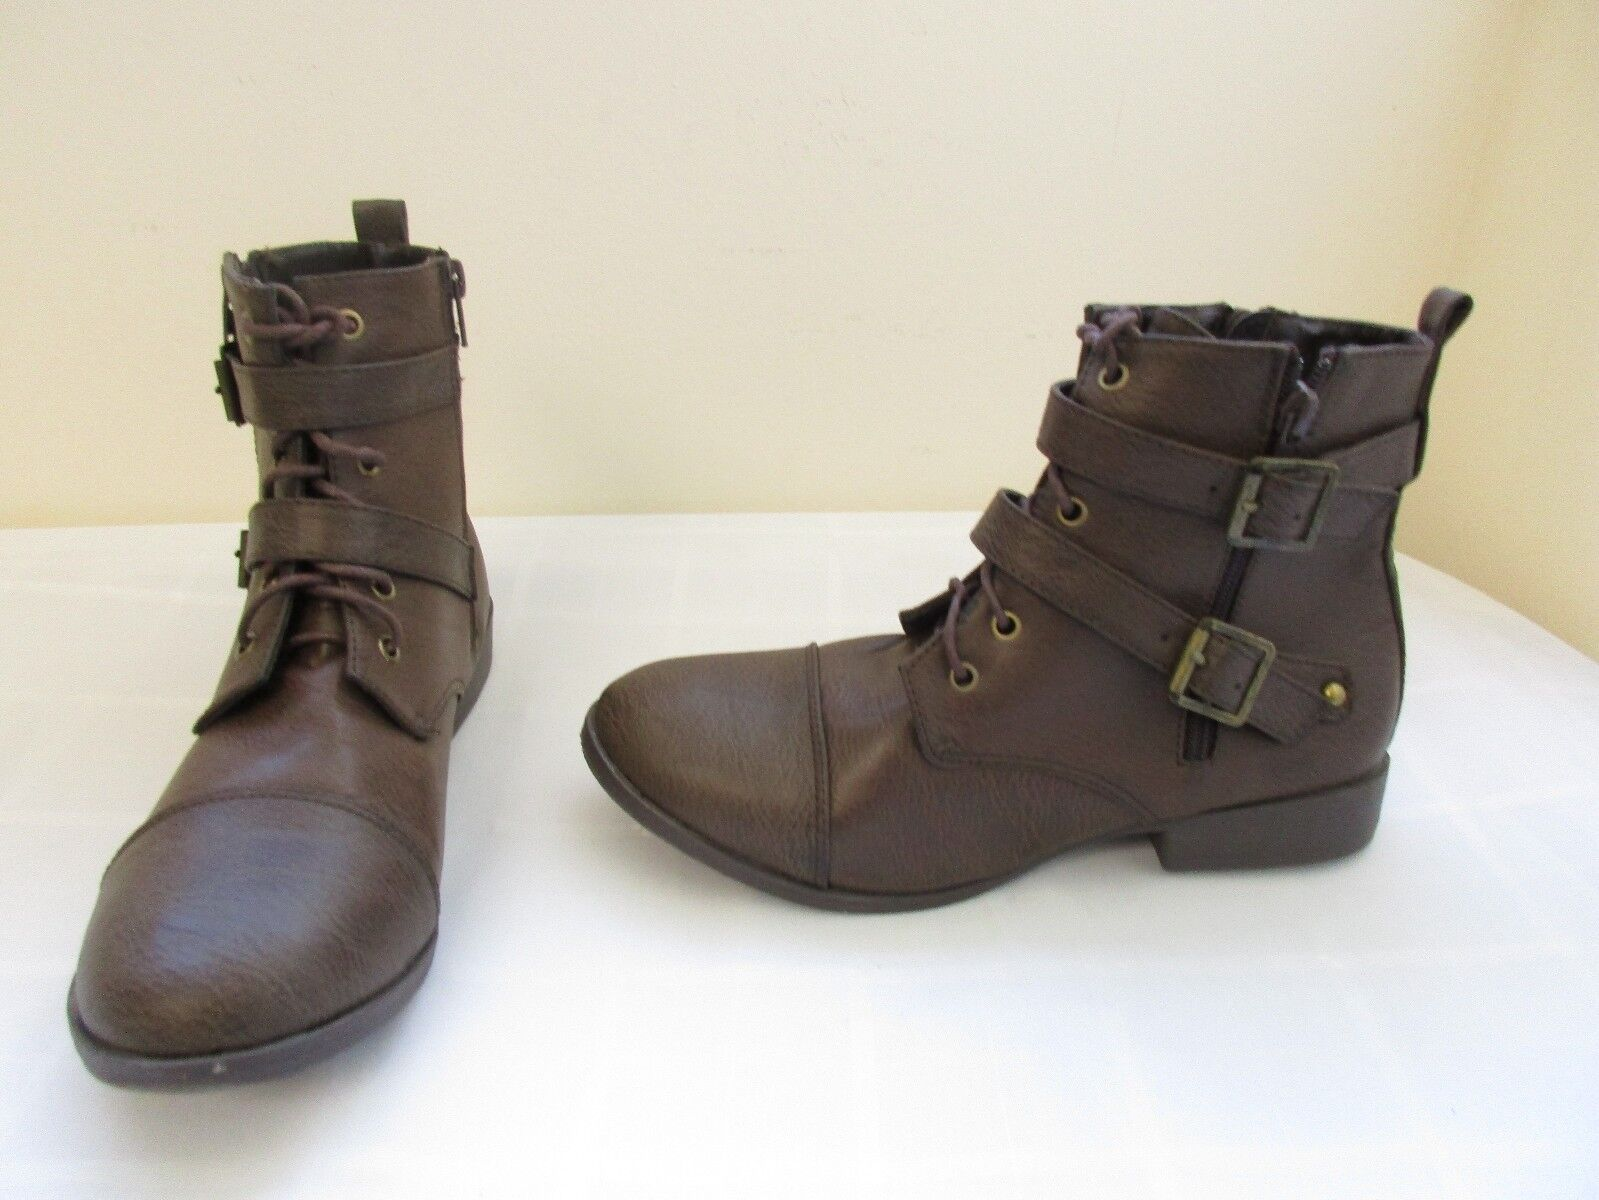 New! Women's Union Bay Desire Combat Ankle Lace Up Zip Boots